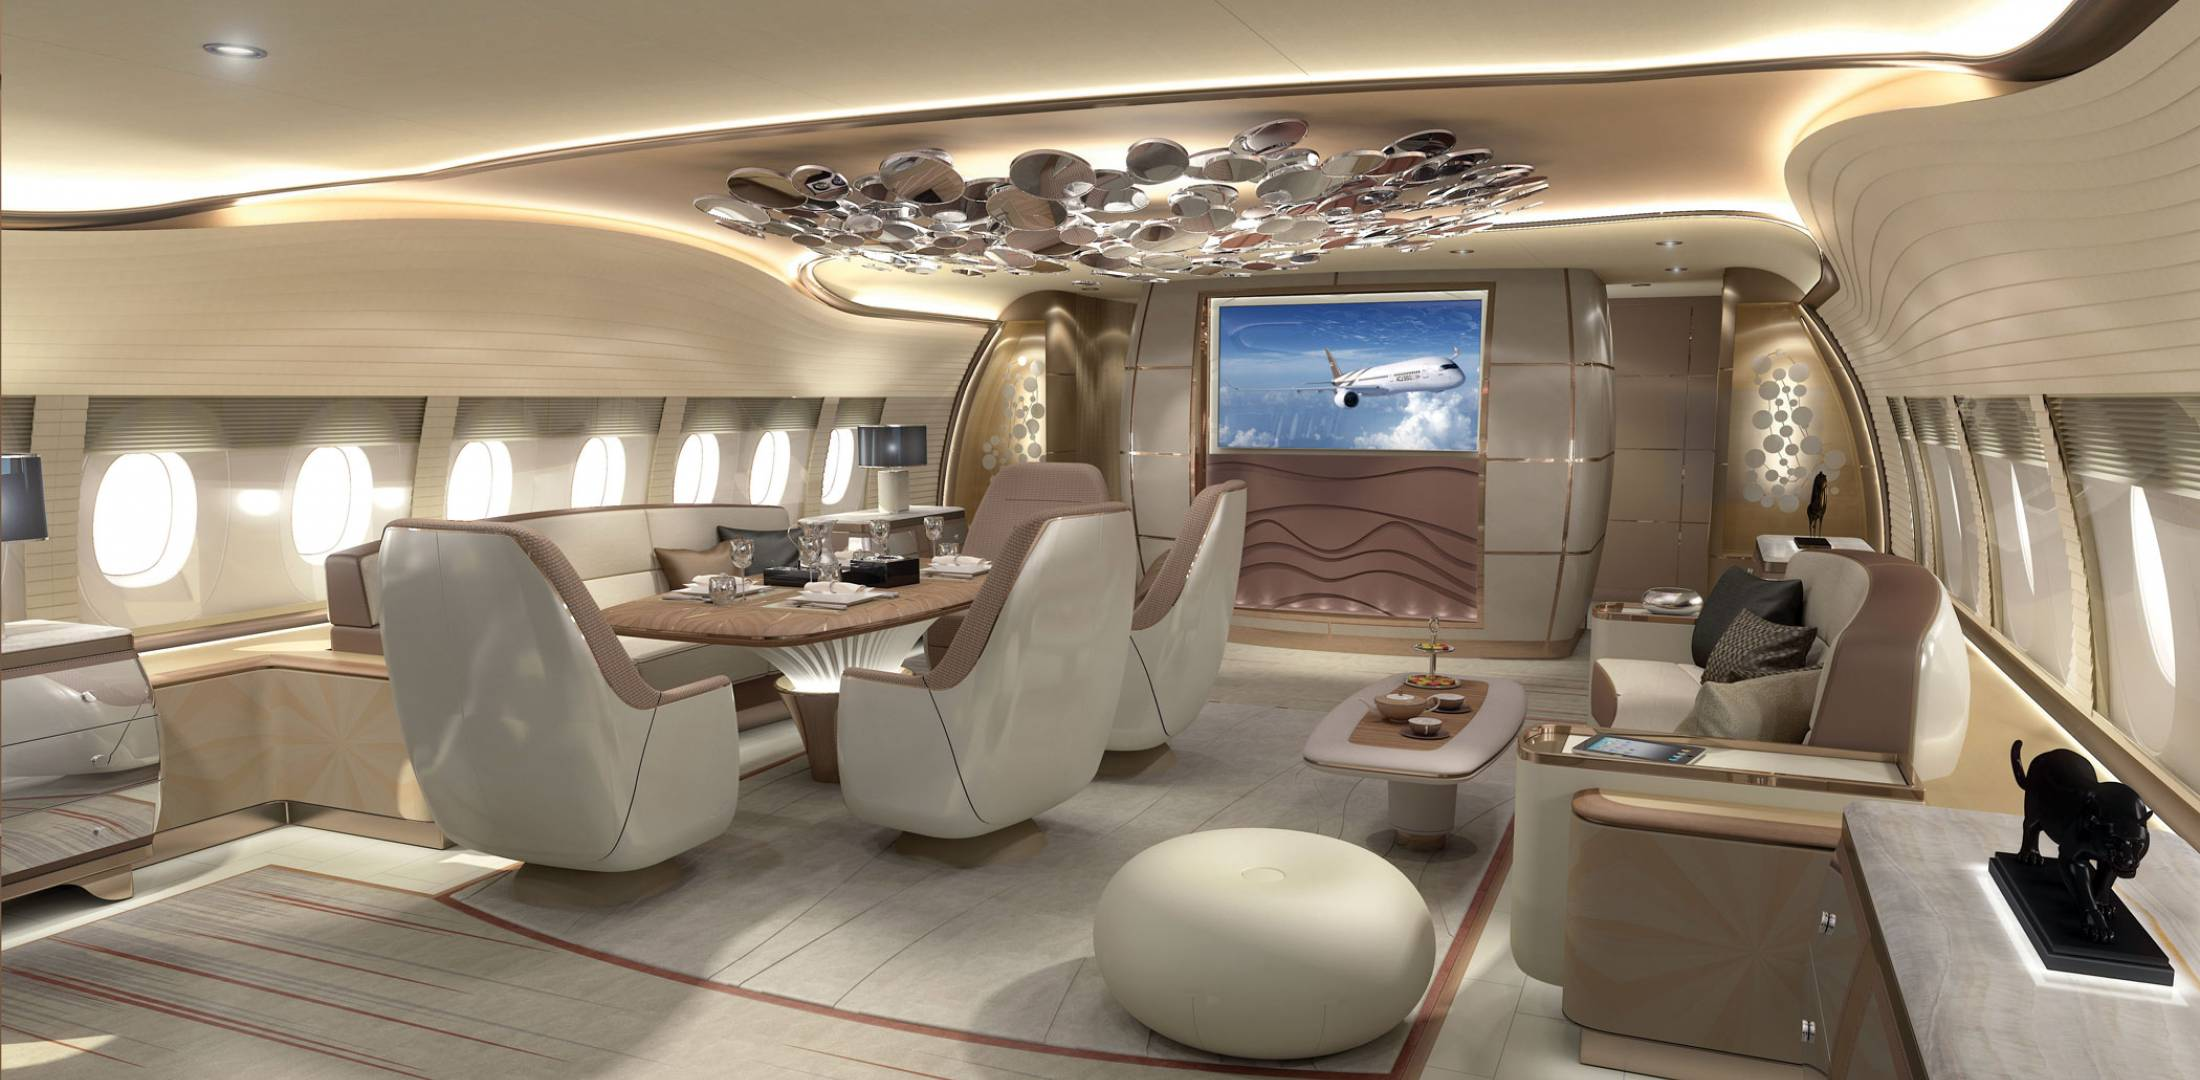 airbus corporate jets tapped jet aviation basel to produce renderings of a vip configured cabin in an acj350 - Business Jet Interior Design